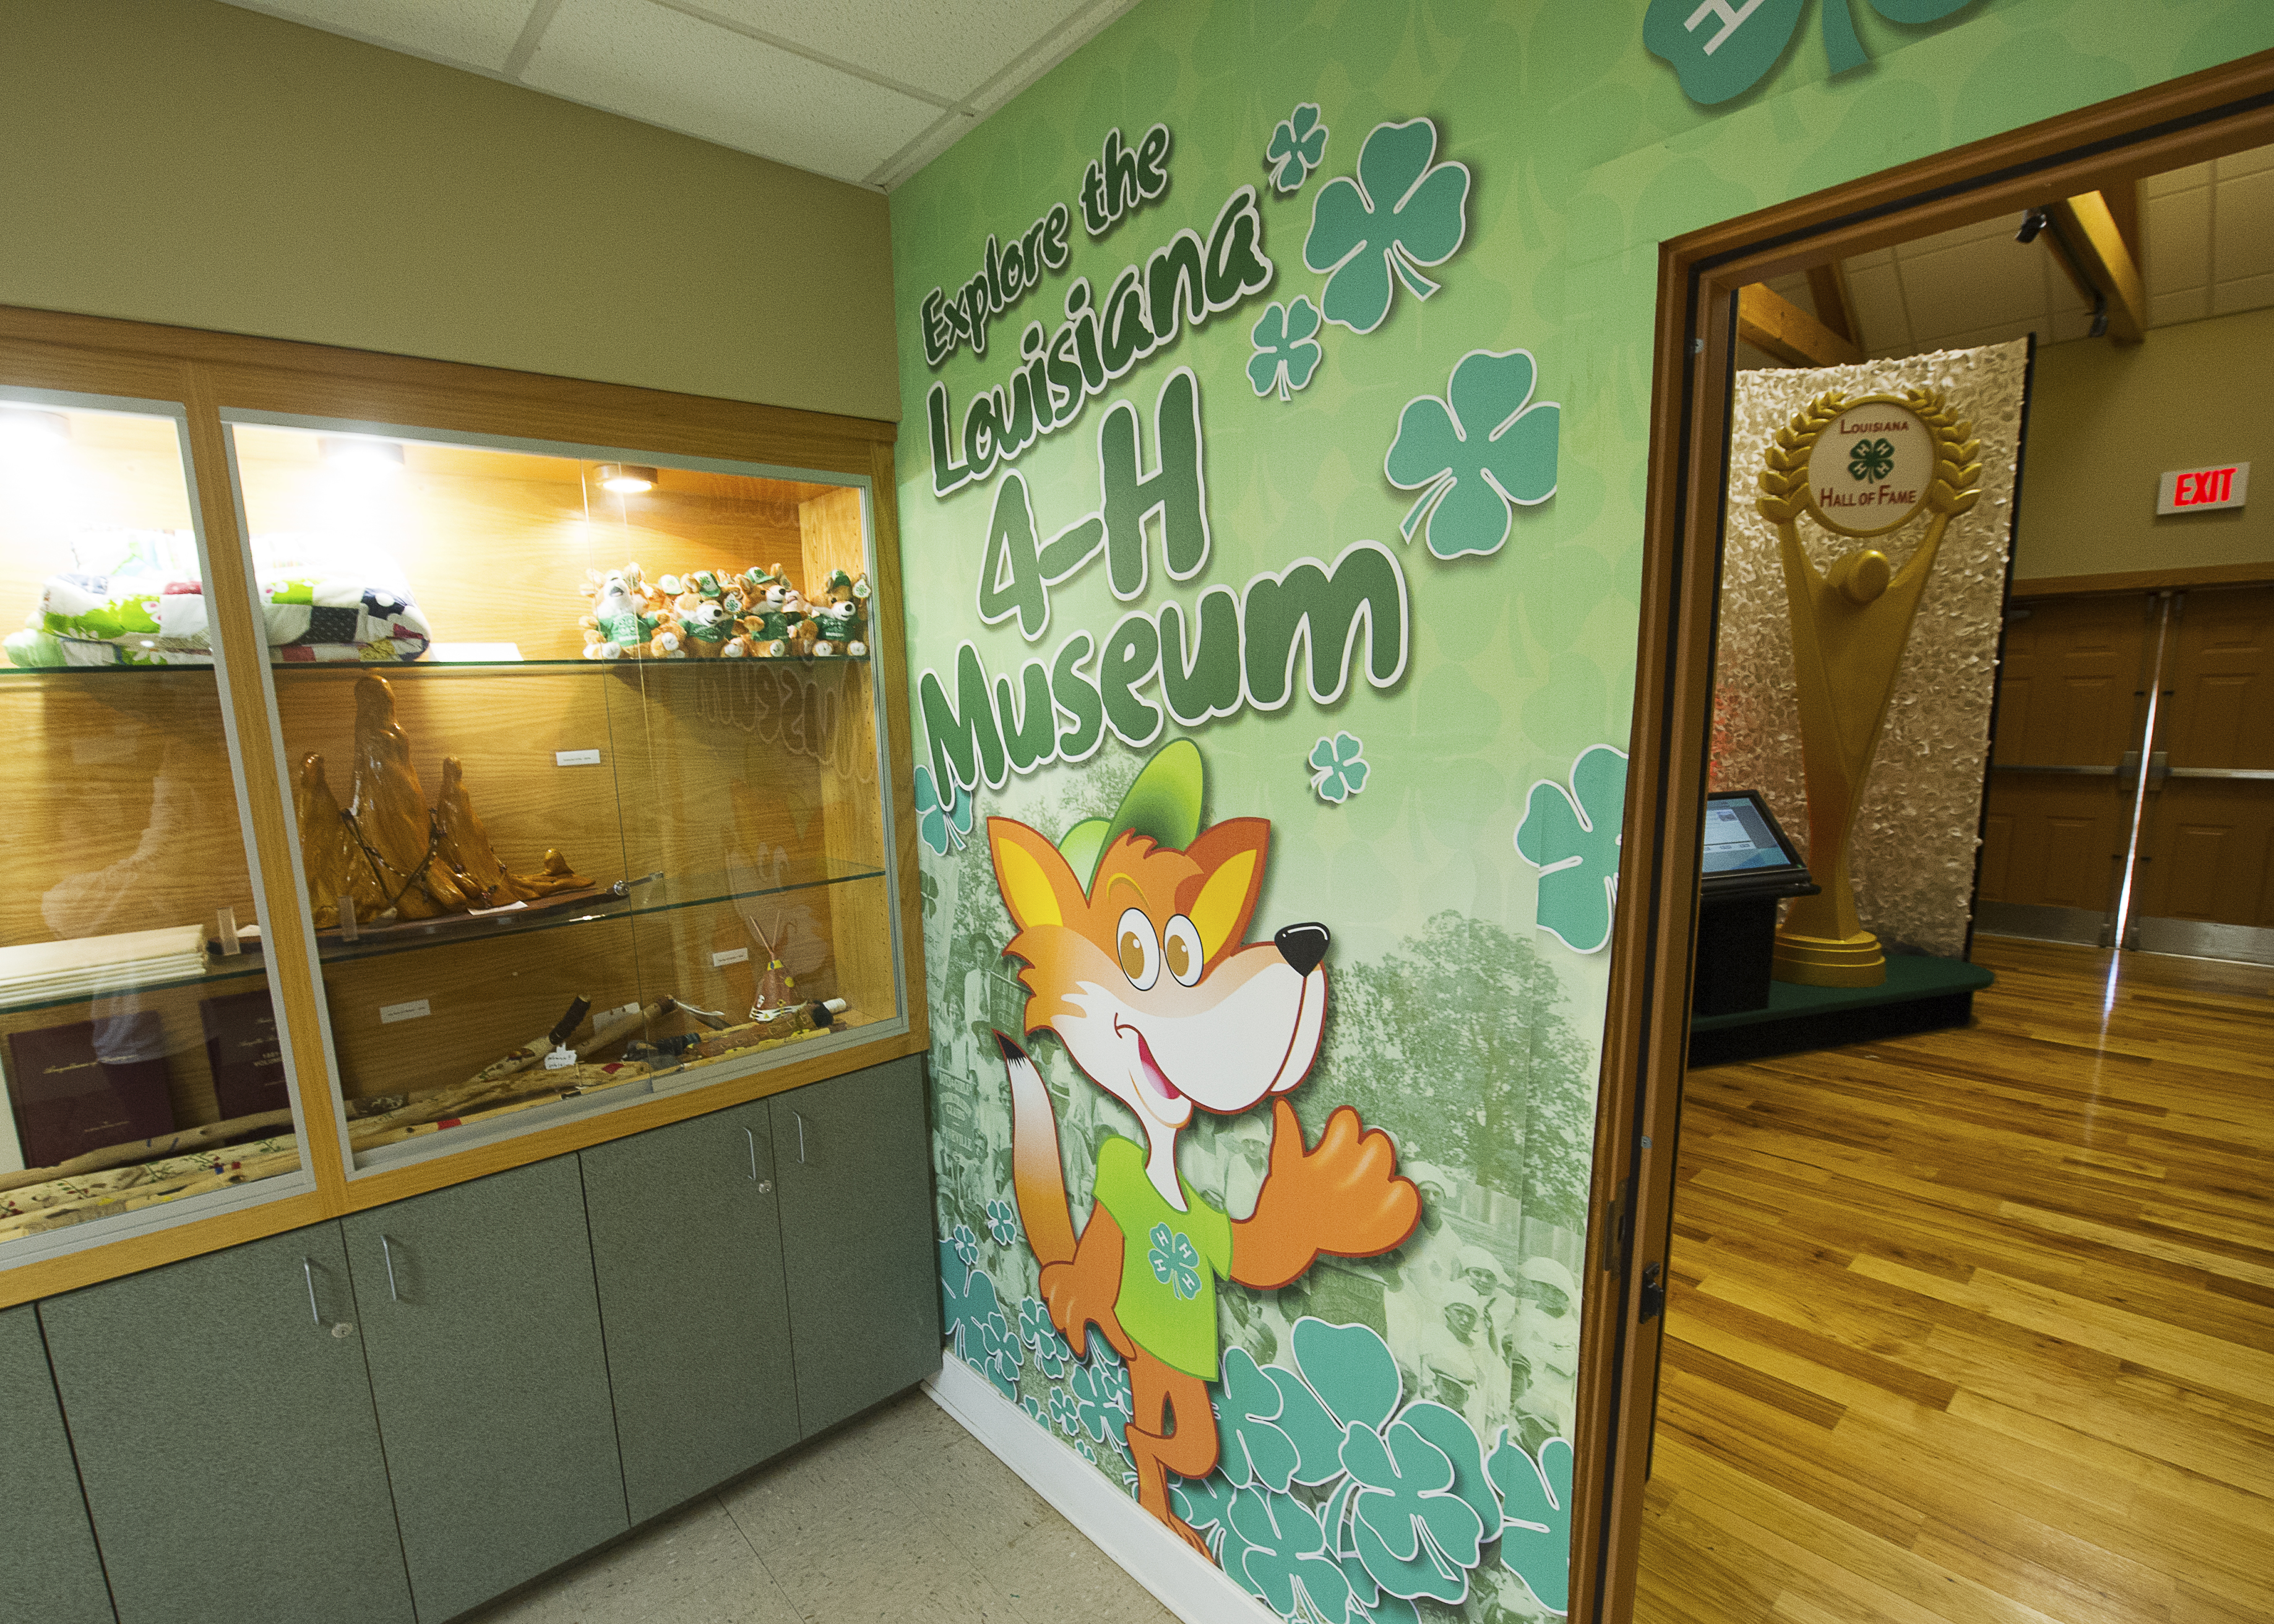 Louisiana 4-H Museum Features Organization History